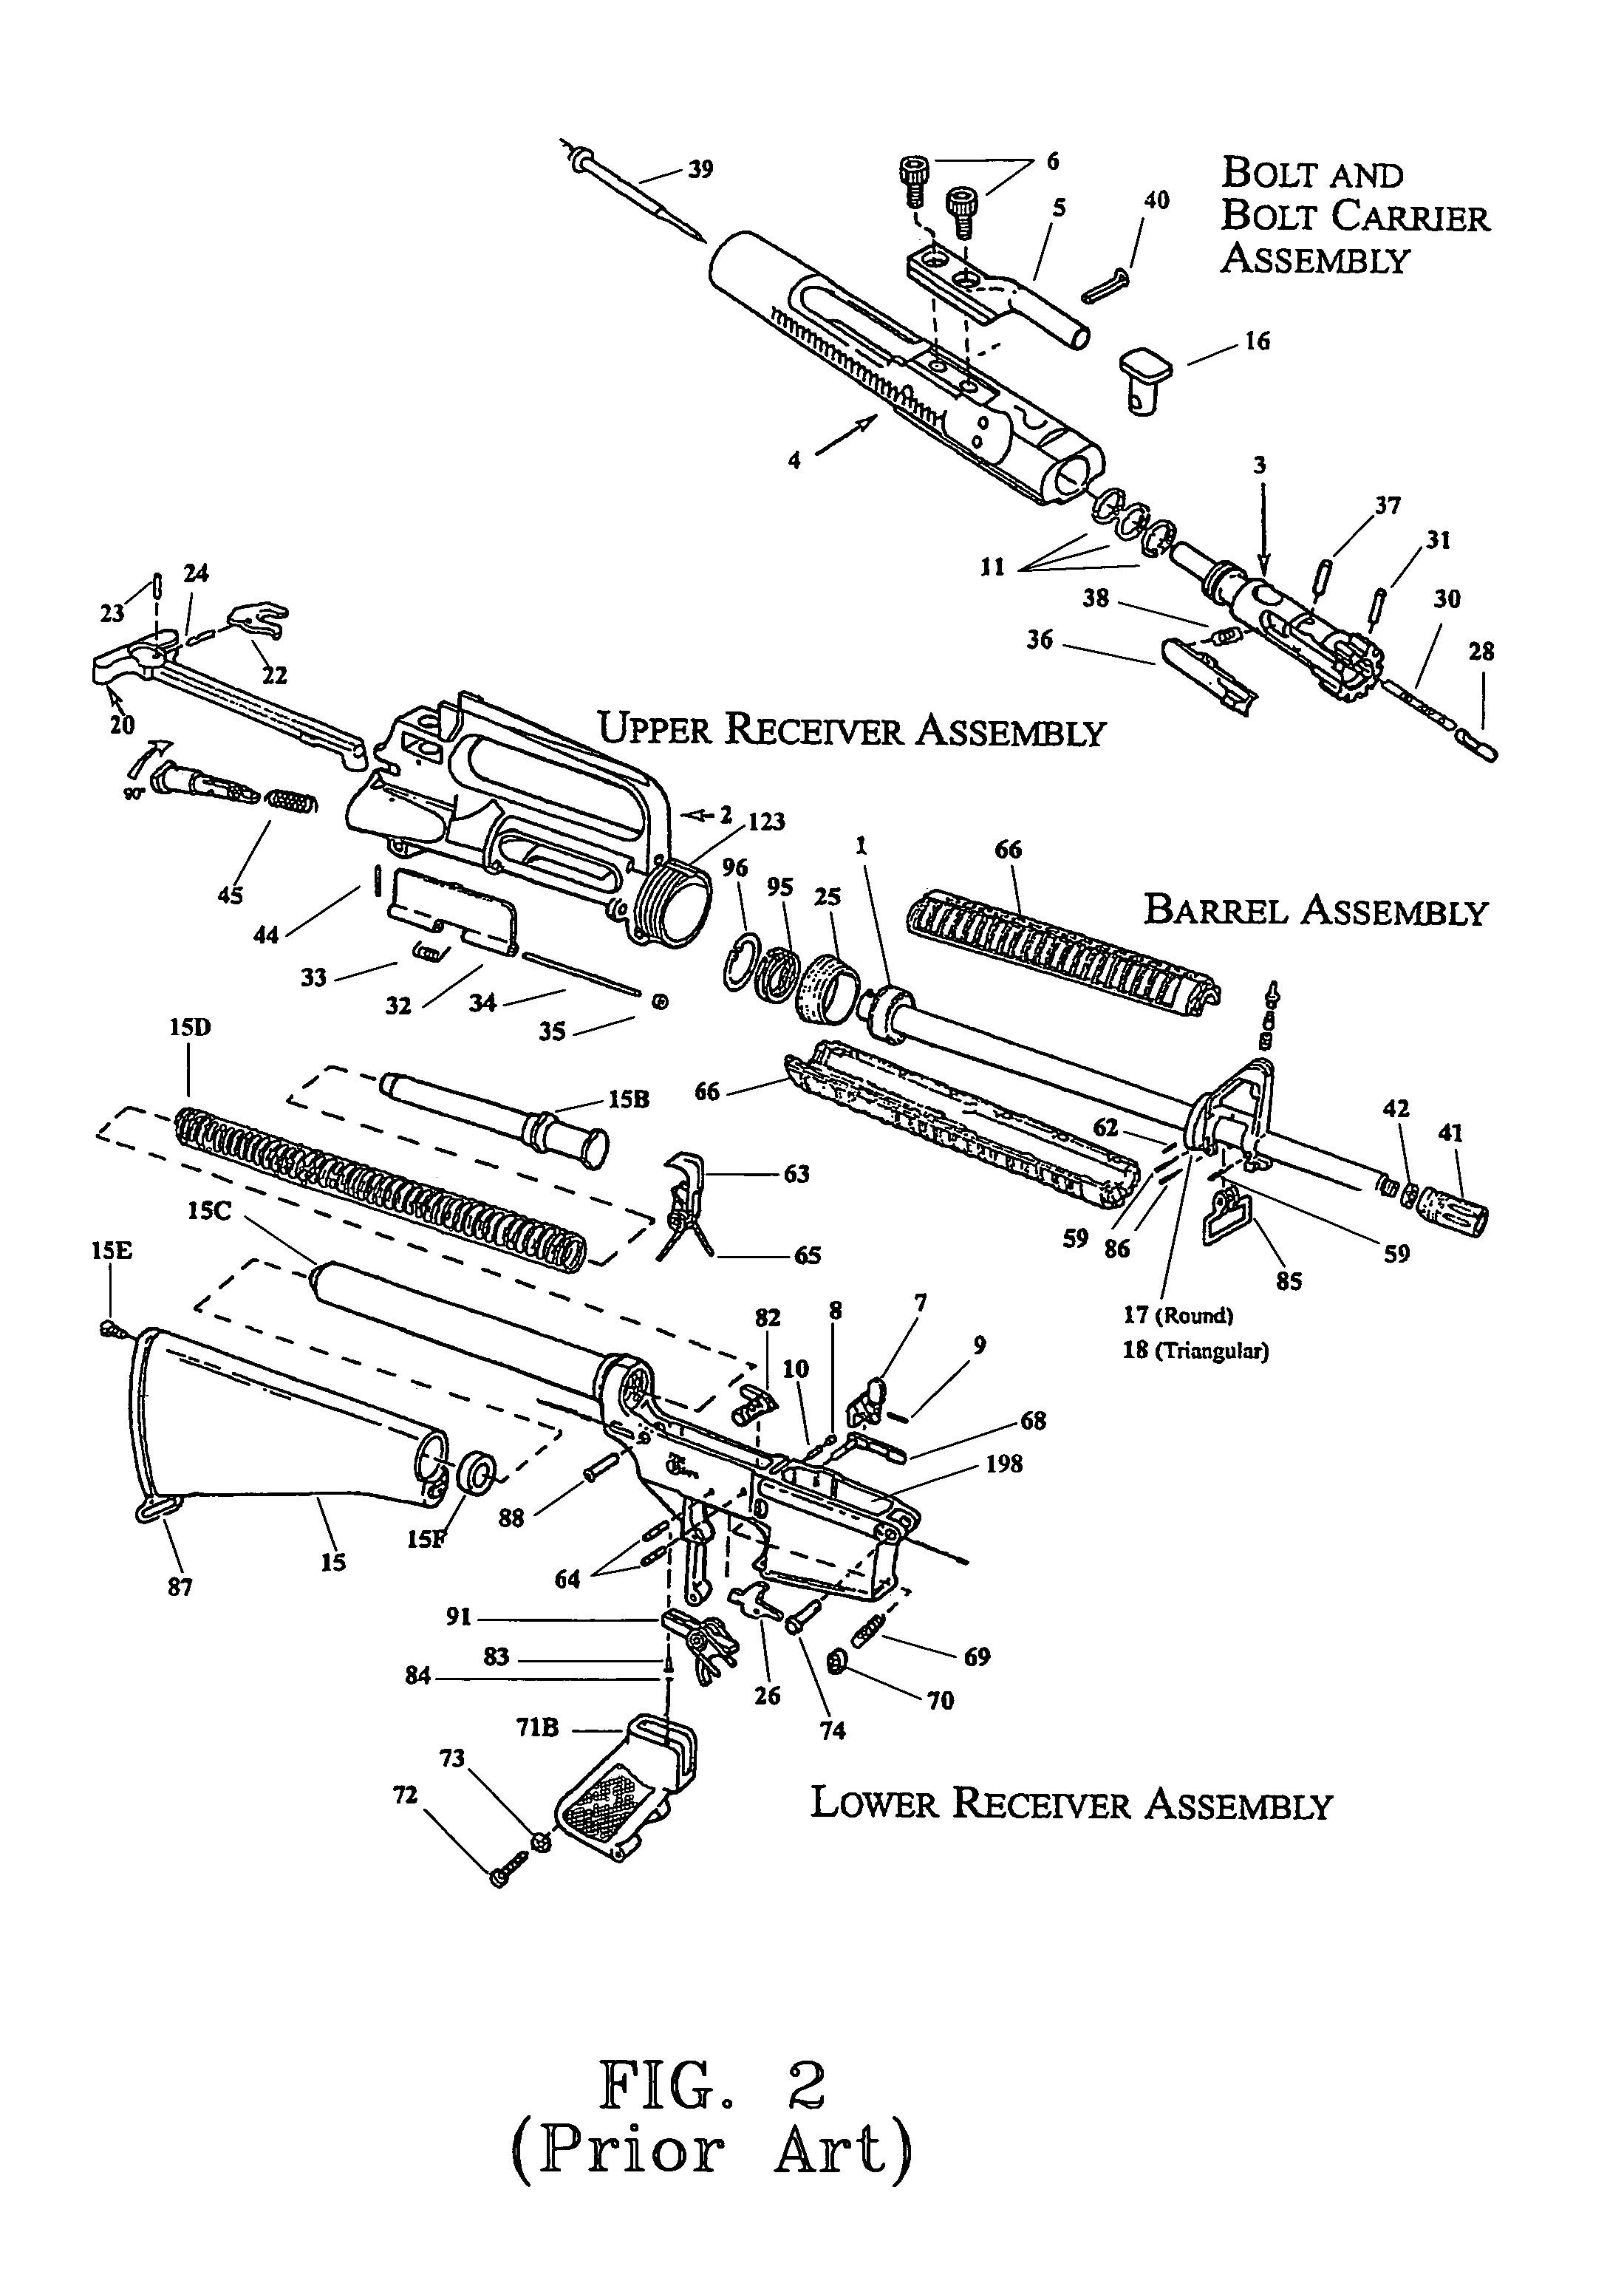 small resolution of ar 15 upper receiver exploded view diagram guns m4 carbine gunsar 15 upper receiver exploded